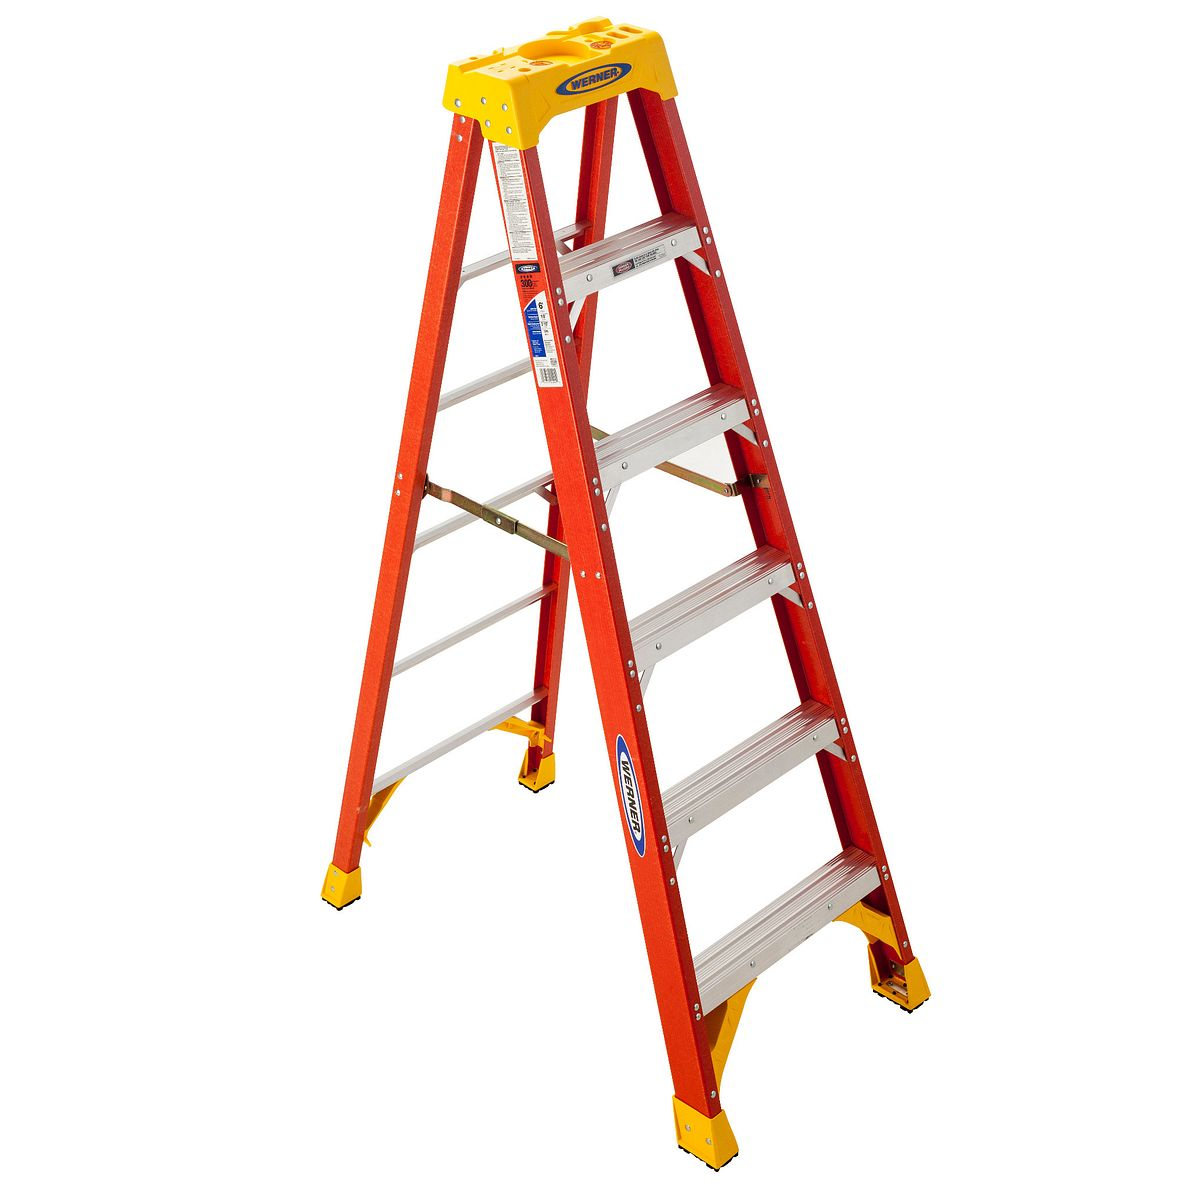 Image result for werner 6200 step ladders